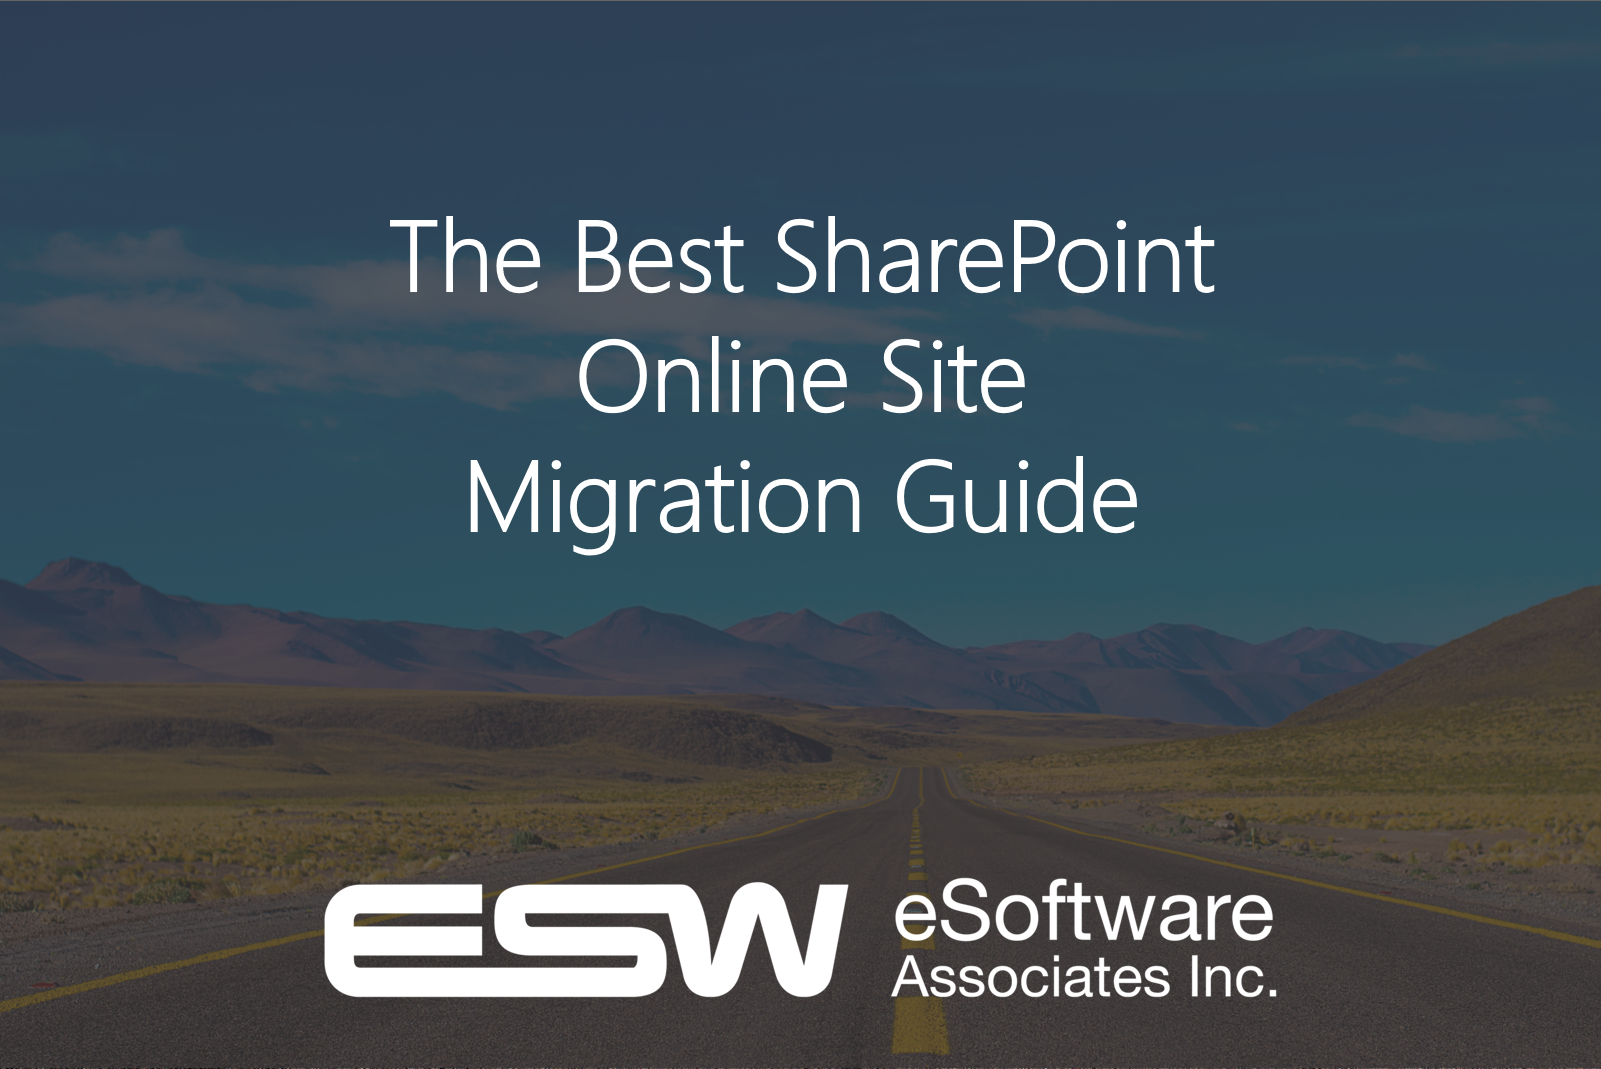 Learn About The Best SharePoint Online Site Migration Guide